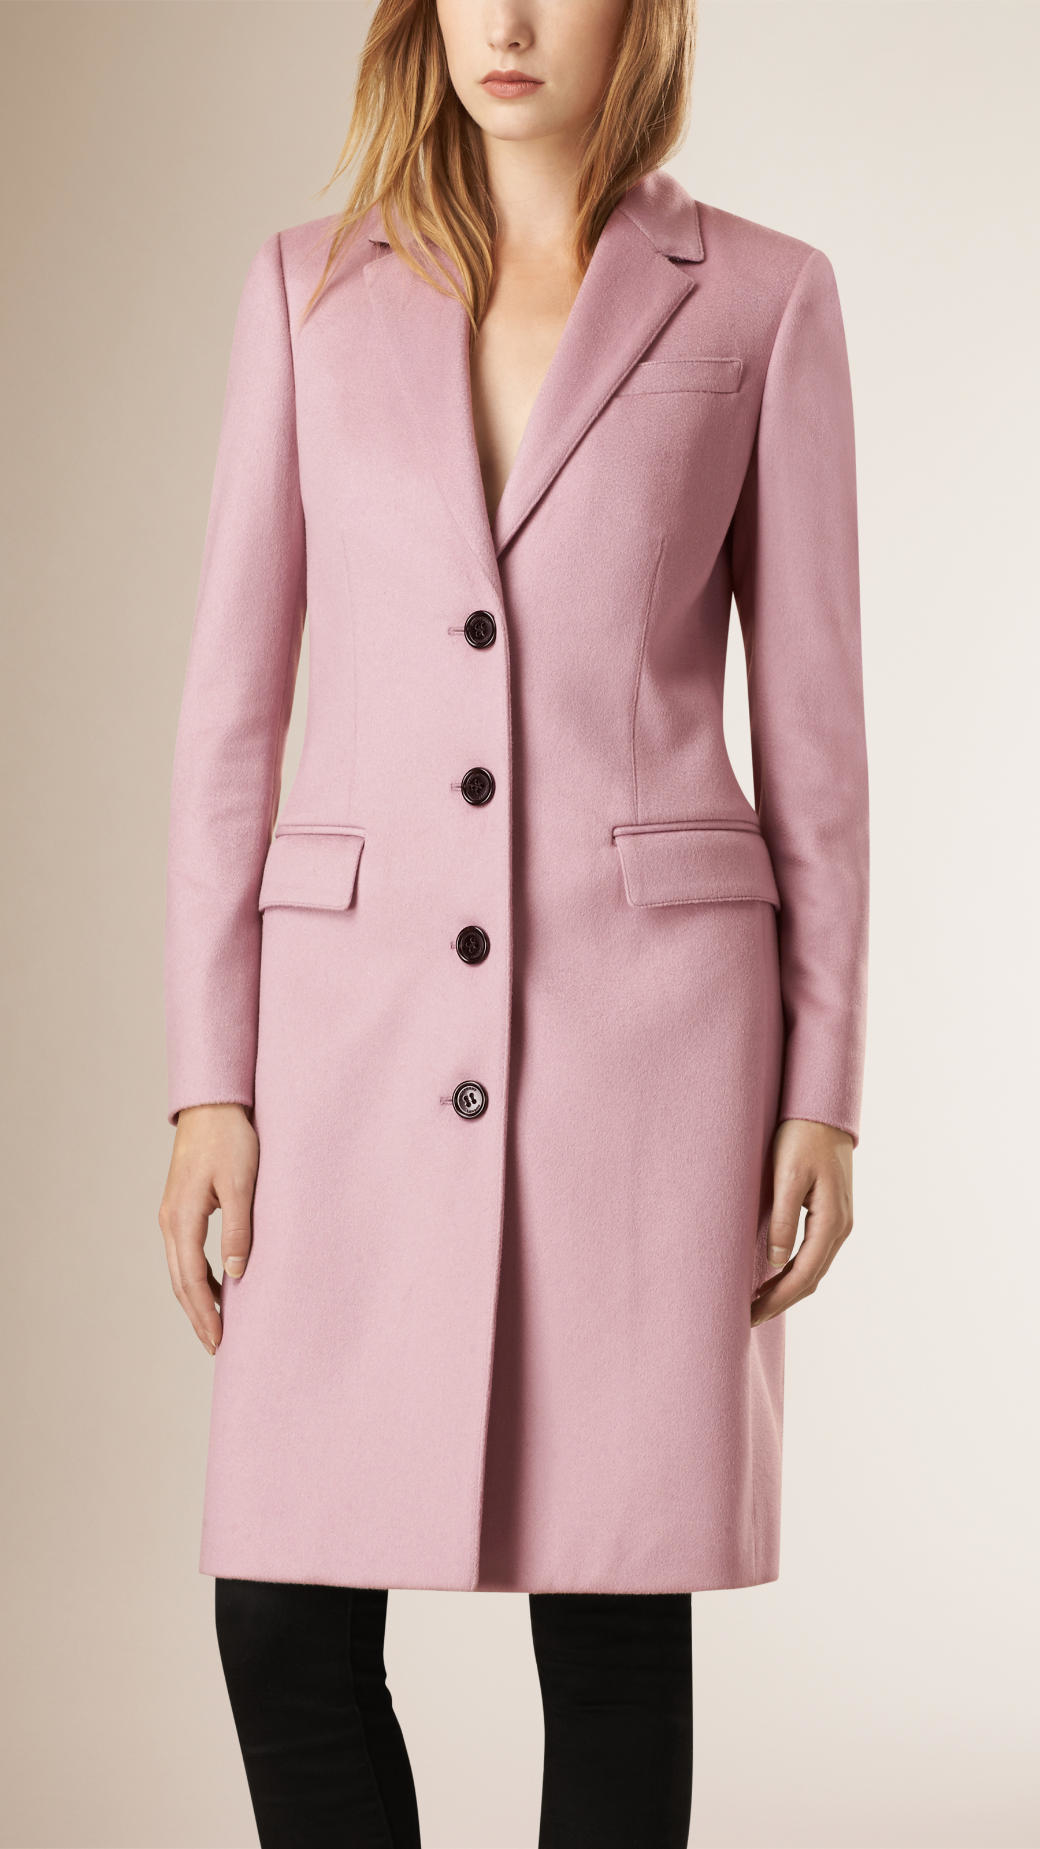 Burberry Cashmere Tailored Coat in Pink | Lyst